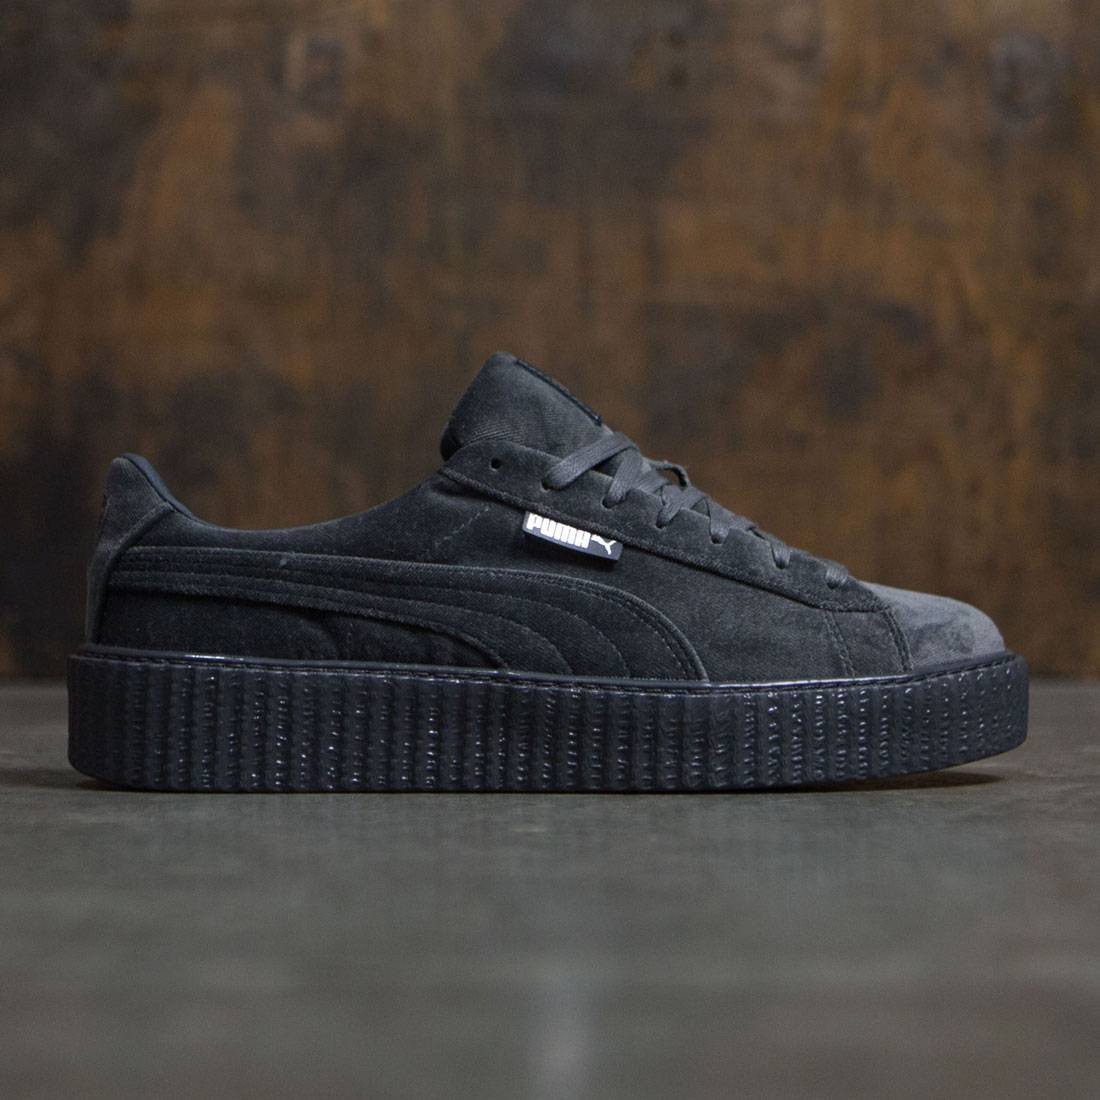 the creeper puma mens